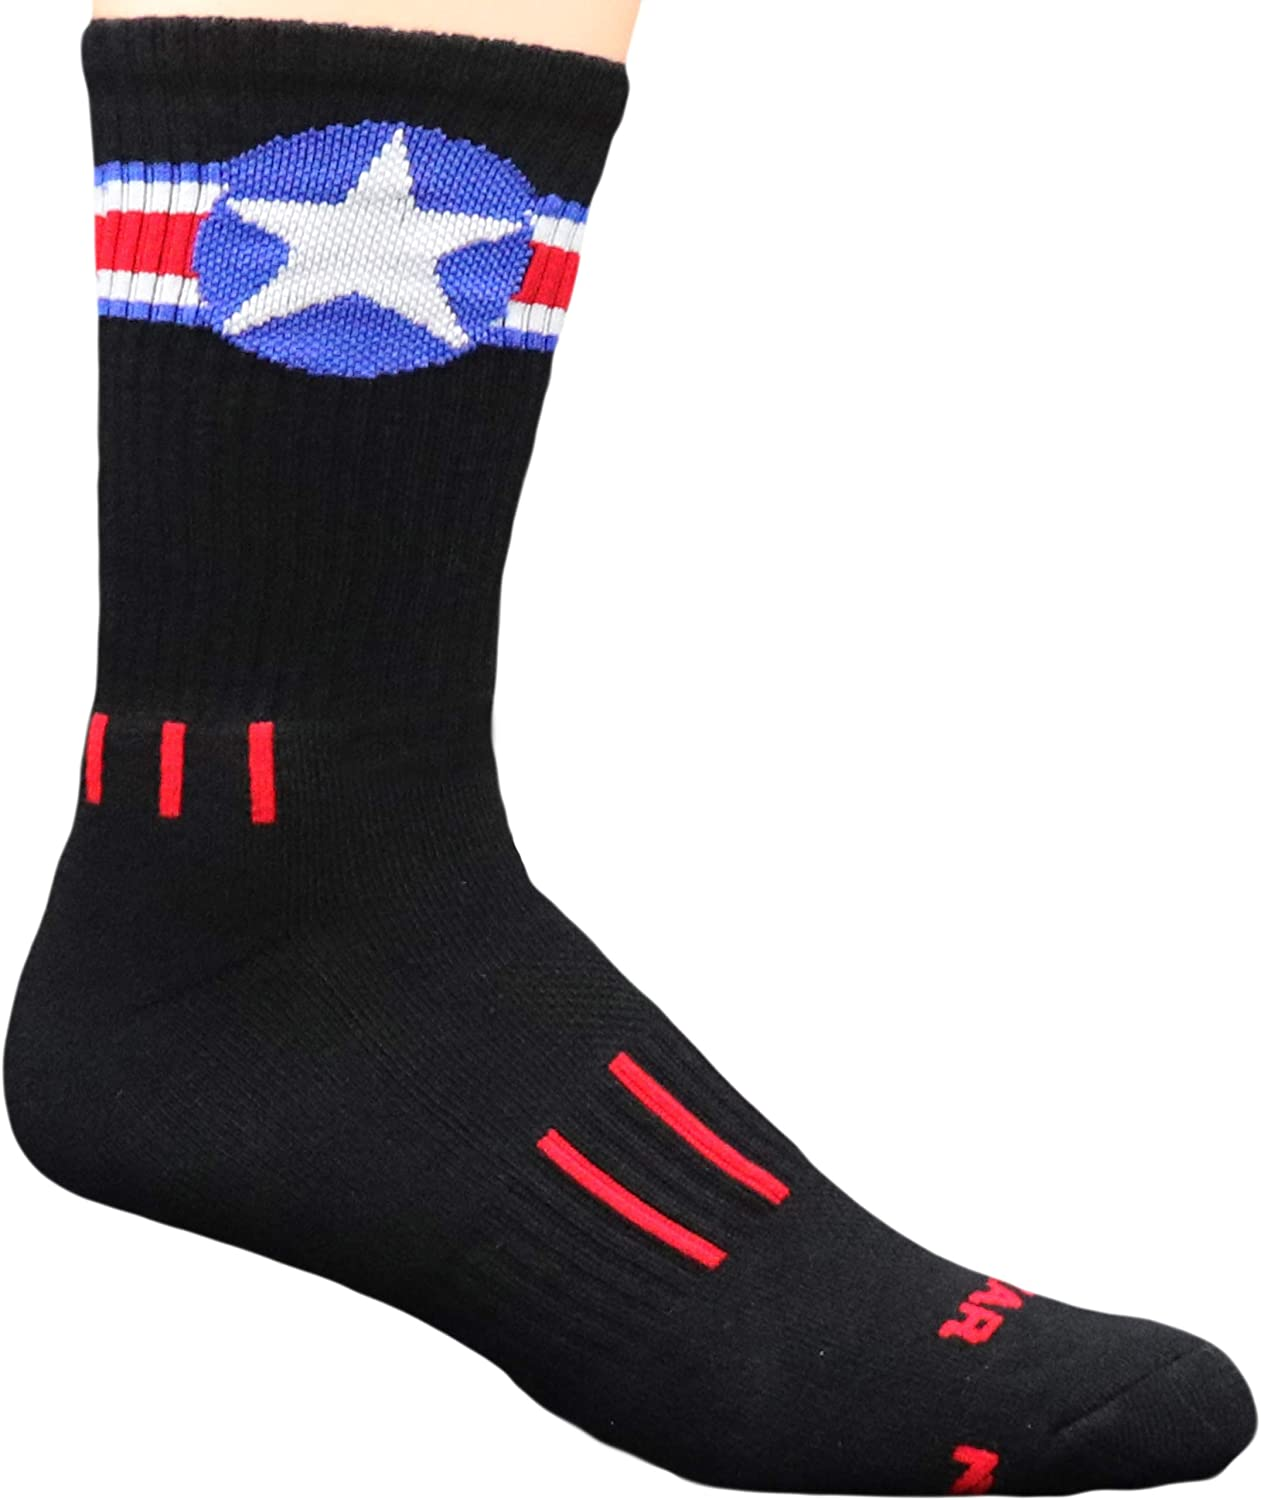 MOXY Socks Black with Red, White, and Blue American Star Performance Crew Socks